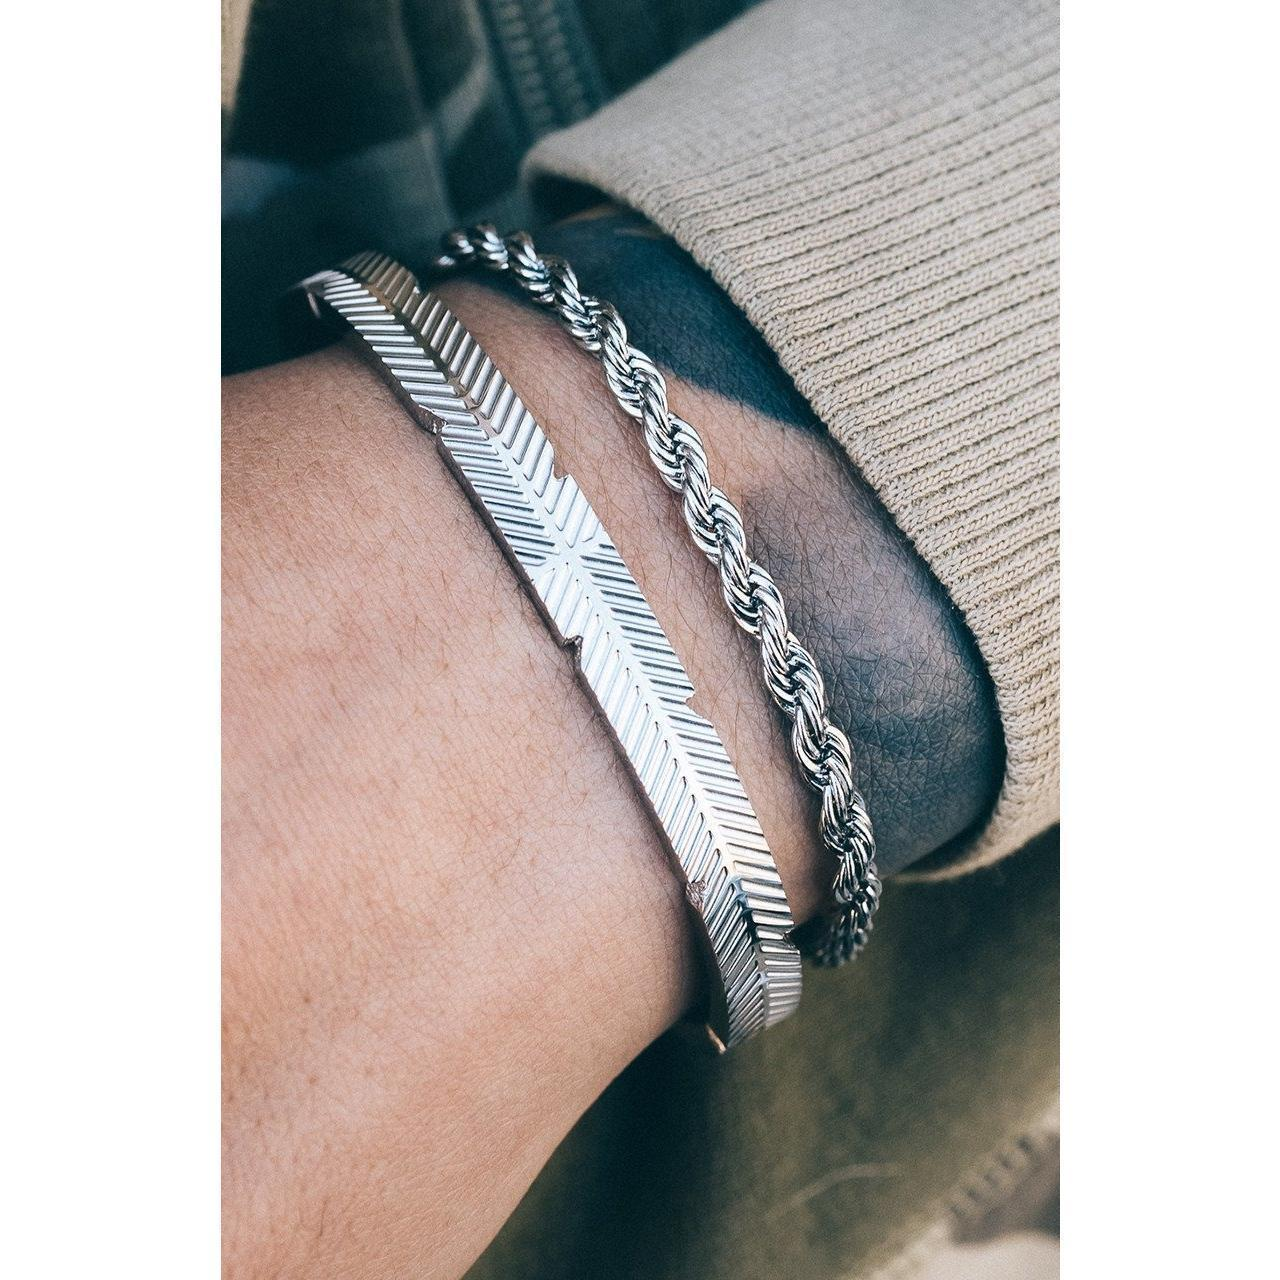 Seize&Desist Los Angeles-Mister Feather Cuff Bracelet- Mens Jewelry and Watches